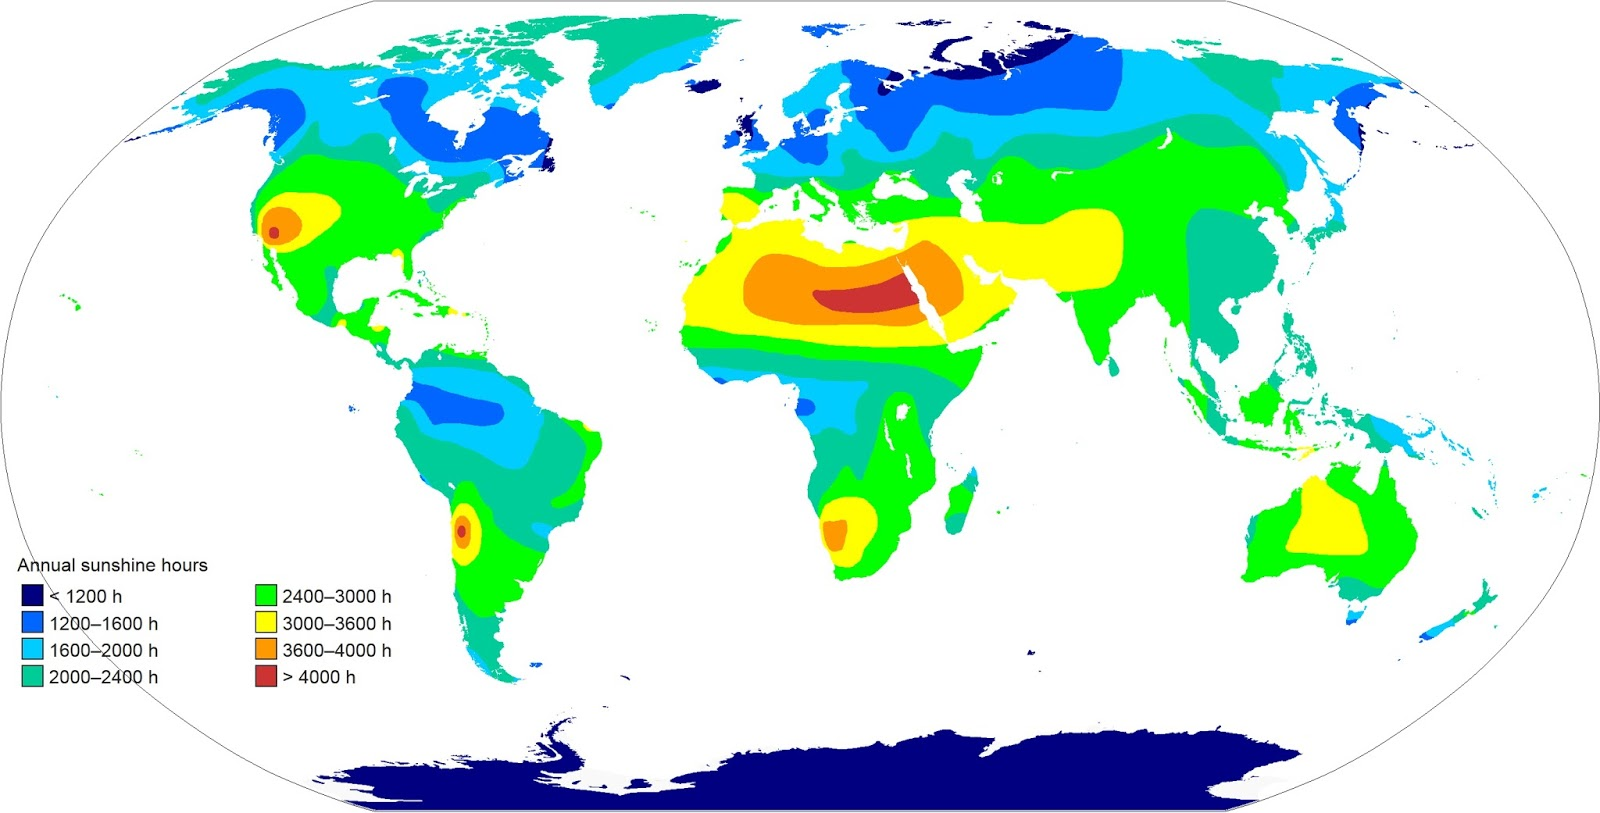 Annual sunshine hours map of the World